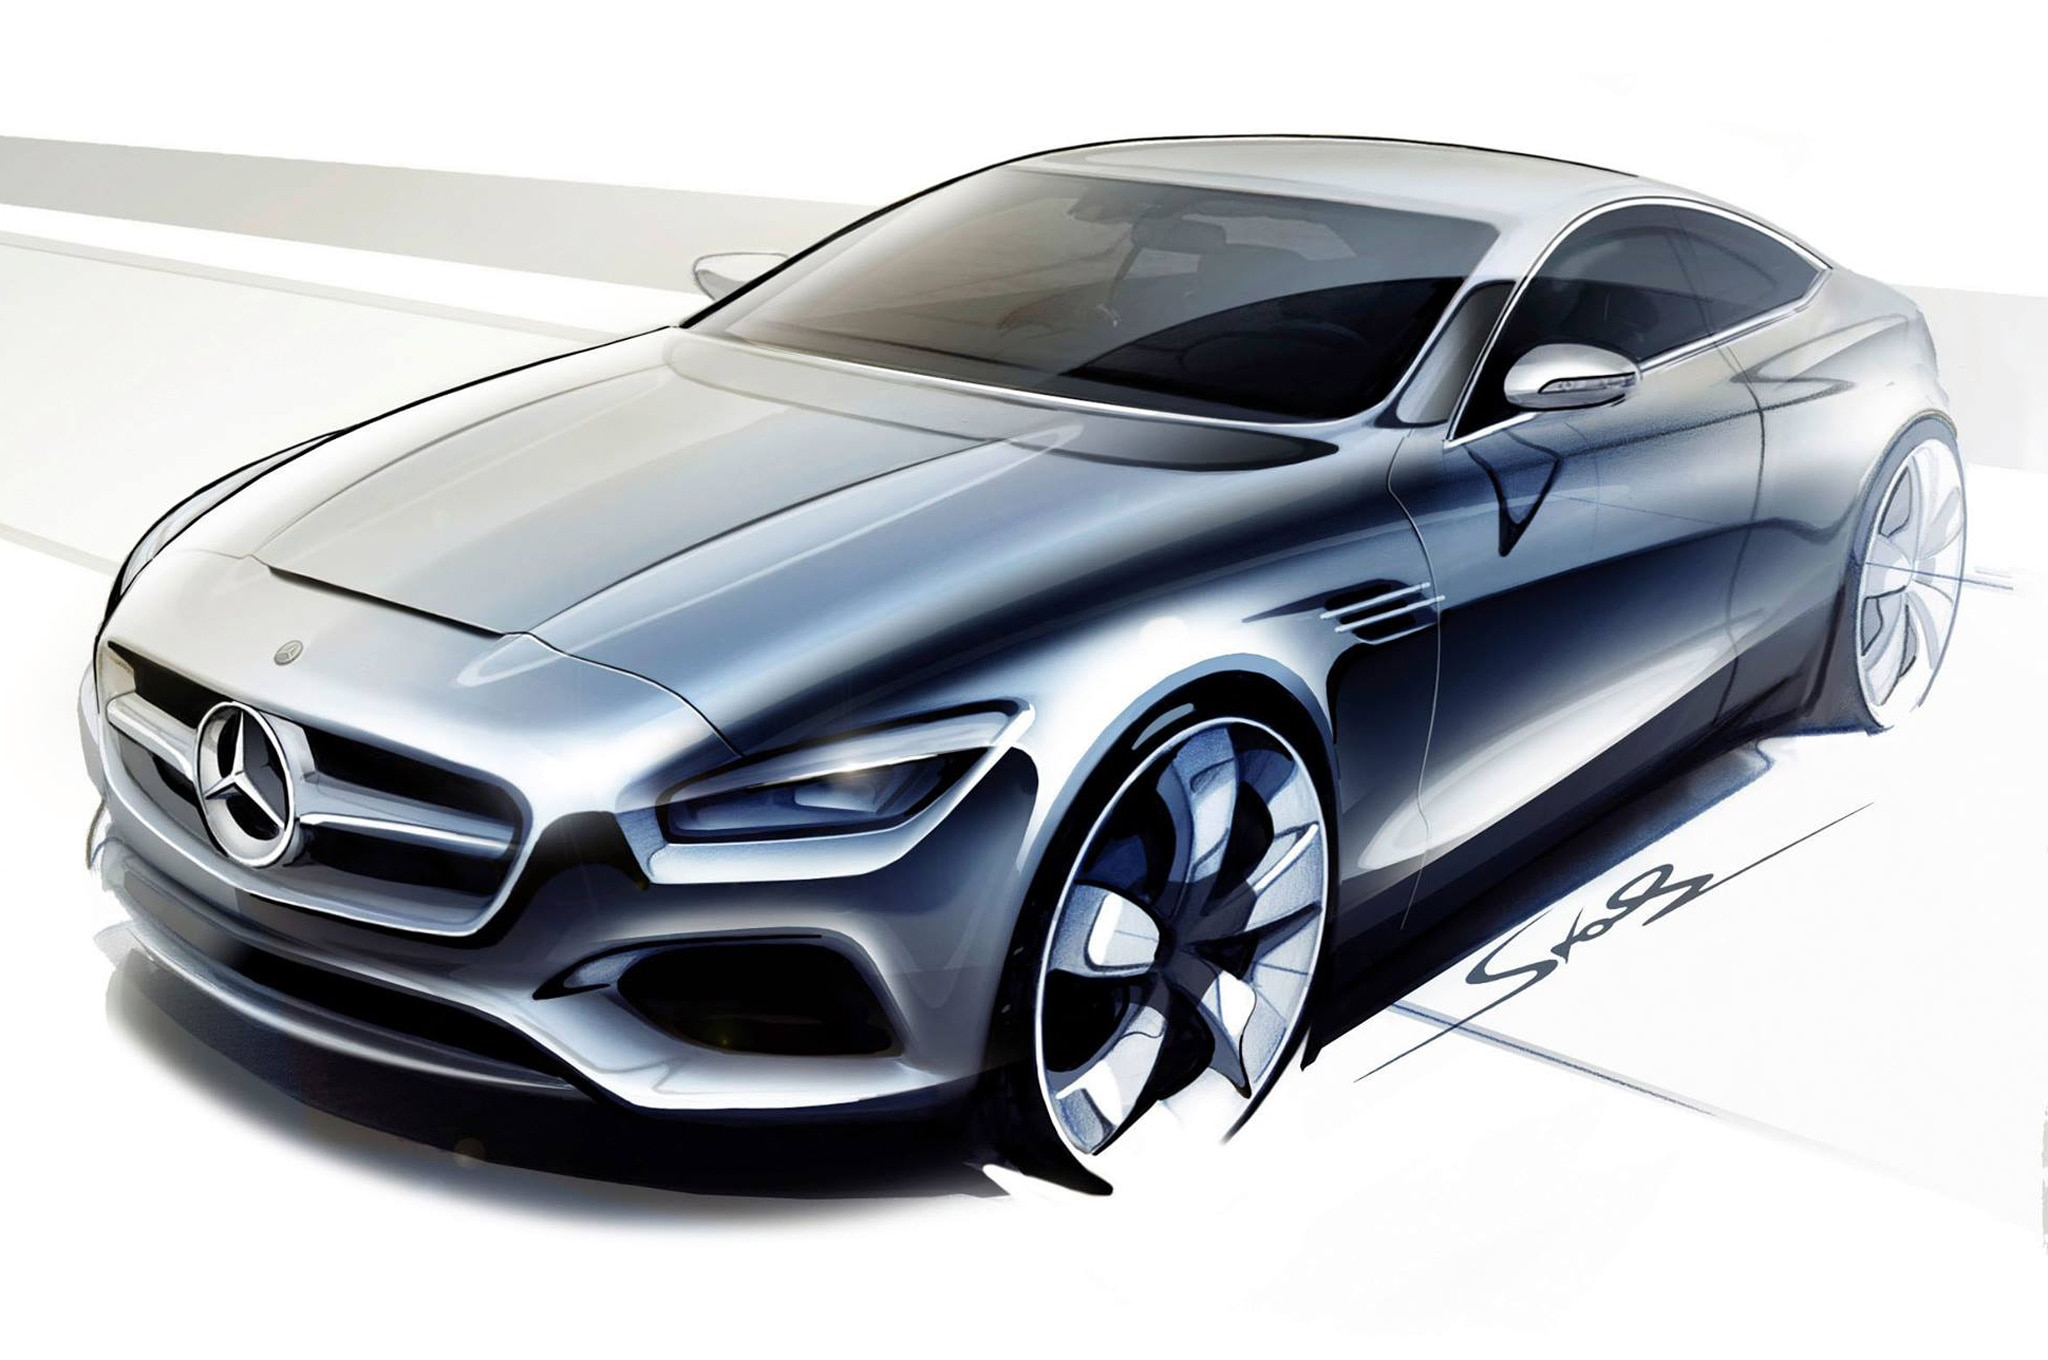 mercedes benz s class coupe concept teased before frankfurt debut. Black Bedroom Furniture Sets. Home Design Ideas